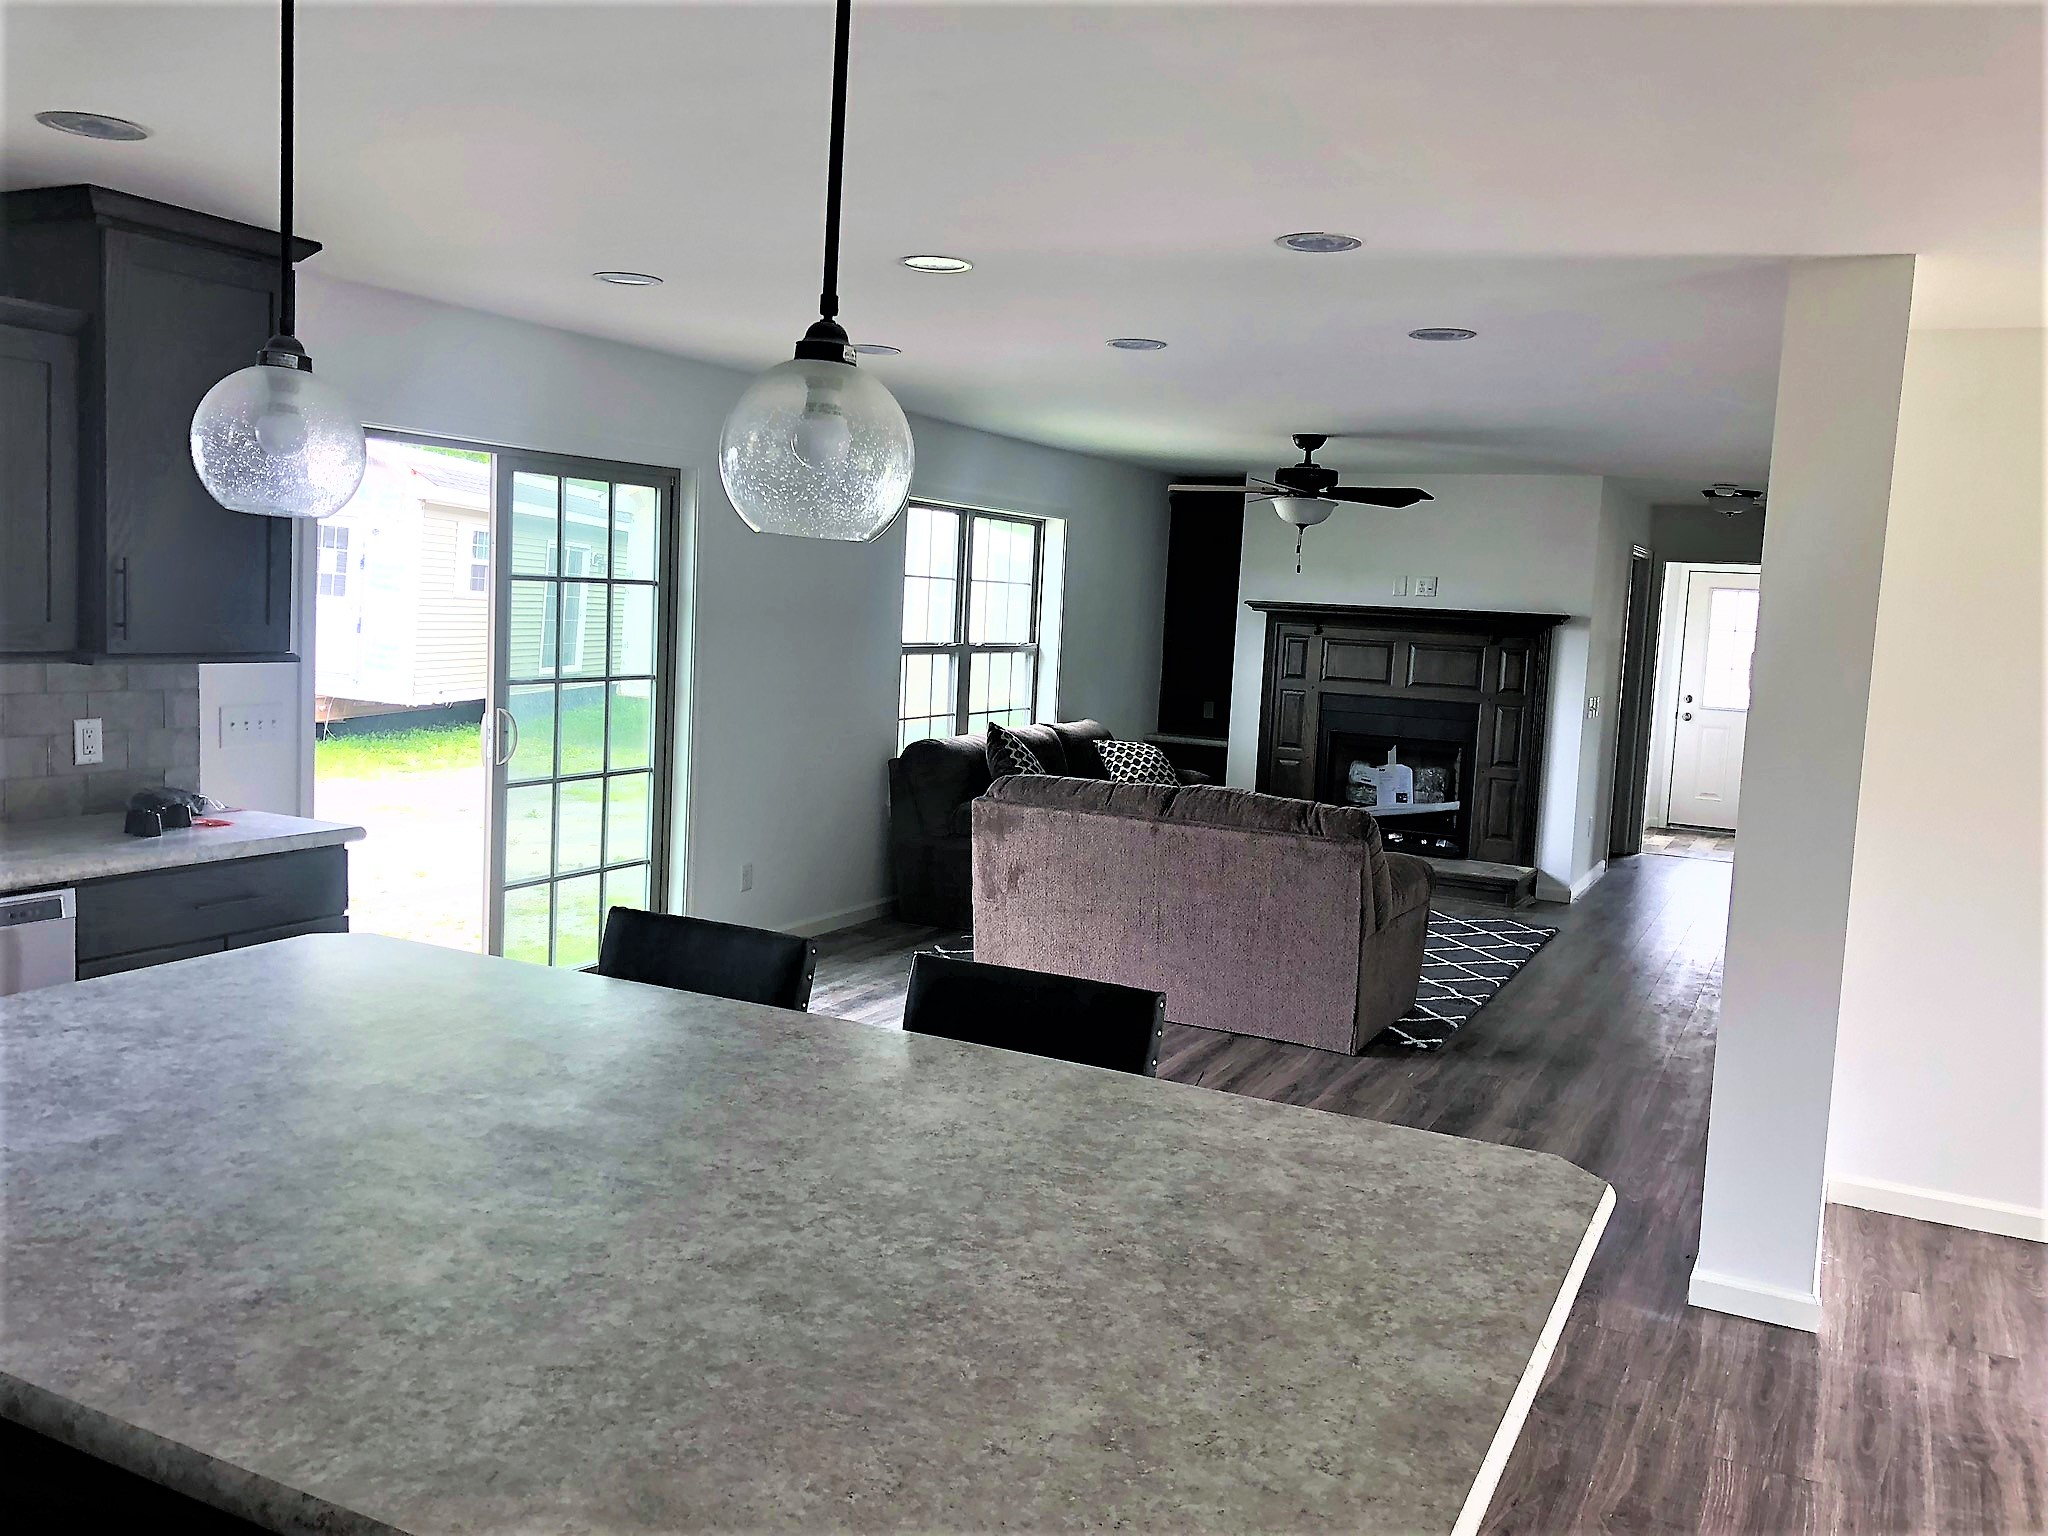 Picture Of The Family Room And Fireplace